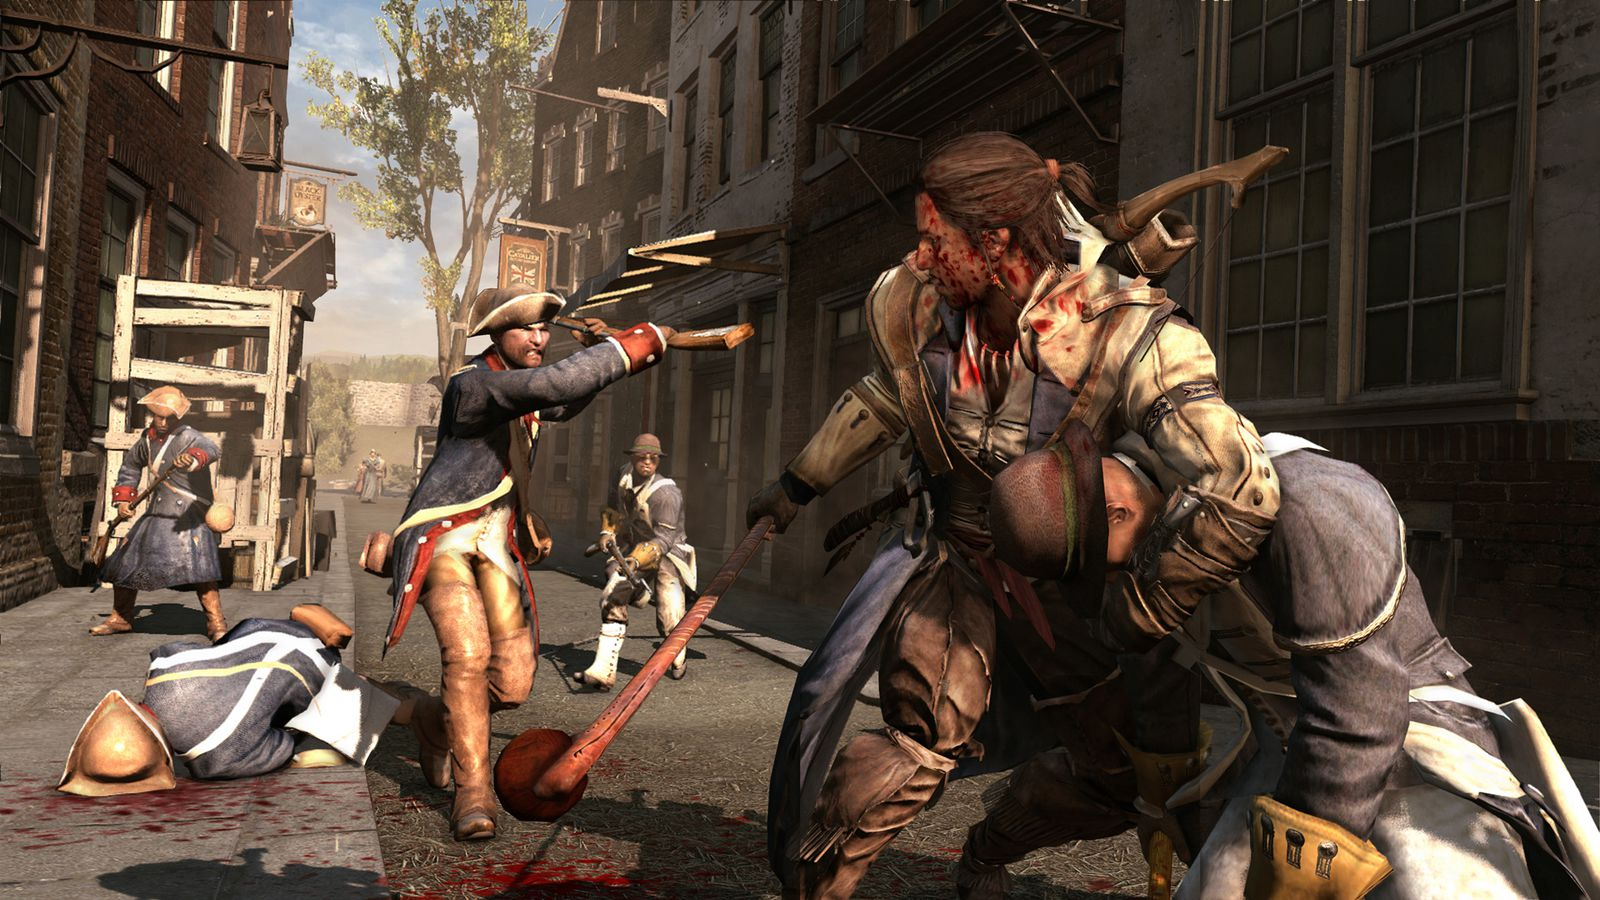 Xbox Games With Gold offers Watch Dogs, Assassin's Creed 3 in June